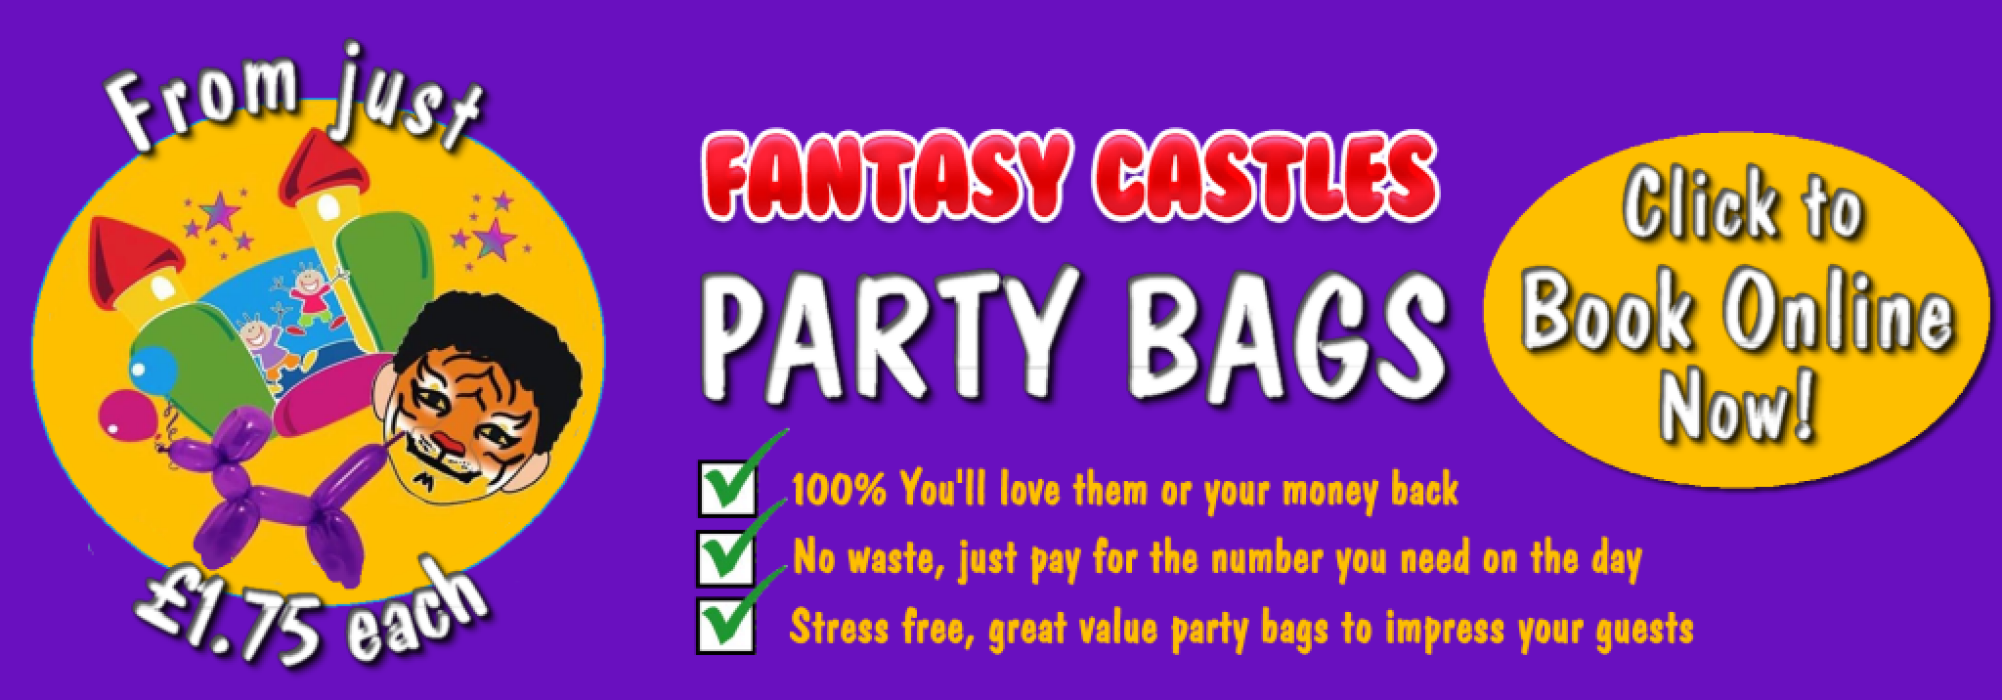 Fantasy Castles Party Bags